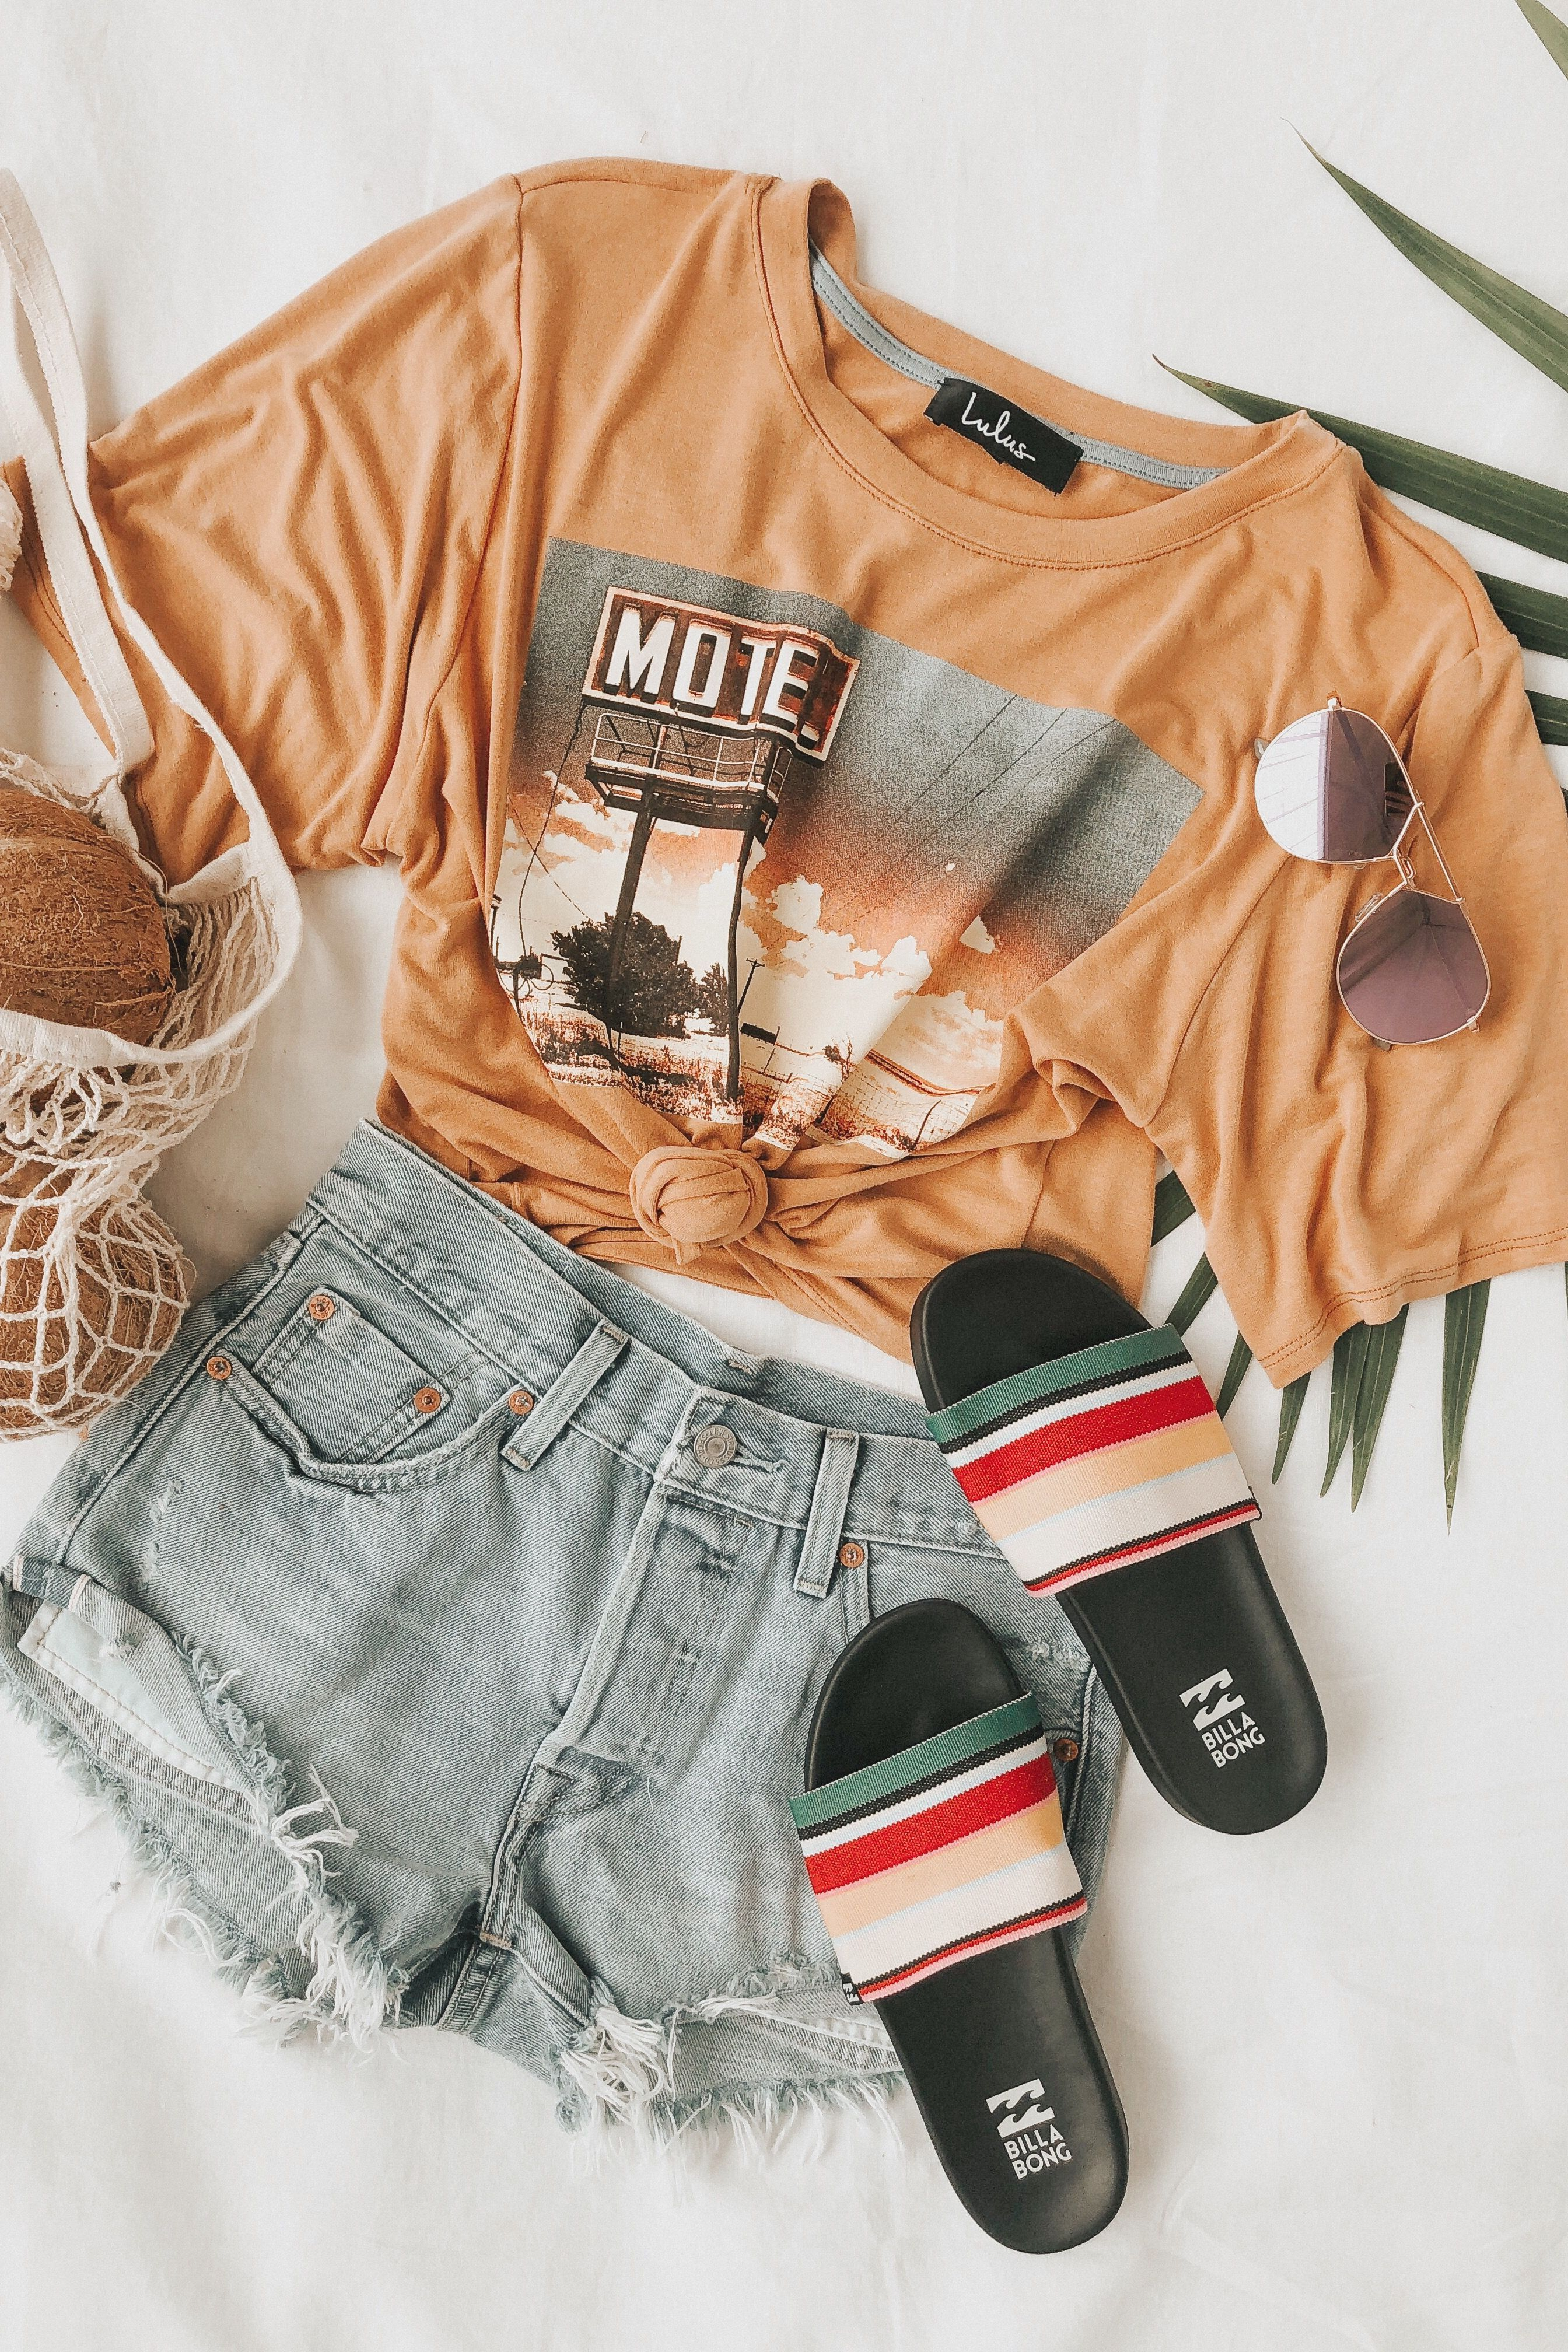 California Fashion Finds To Channel Your Inner Surfer Style #california #channe... - Welcome to Blog